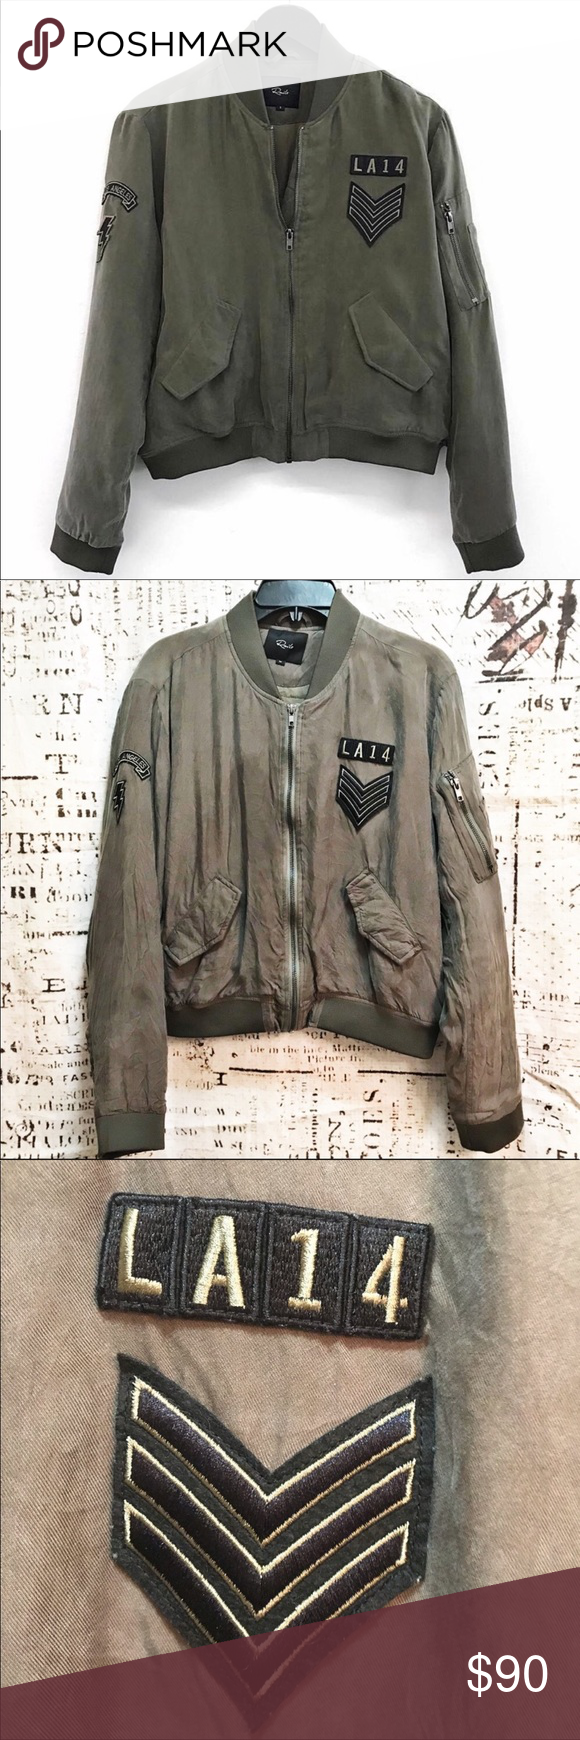 Rails Ace Military Jacket In Sage Green Patch M Brand Rails Style Name Ace Military Jacket Details Zip Front Fron Military Jacket Jackets Military Fashion [ 1740 x 580 Pixel ]